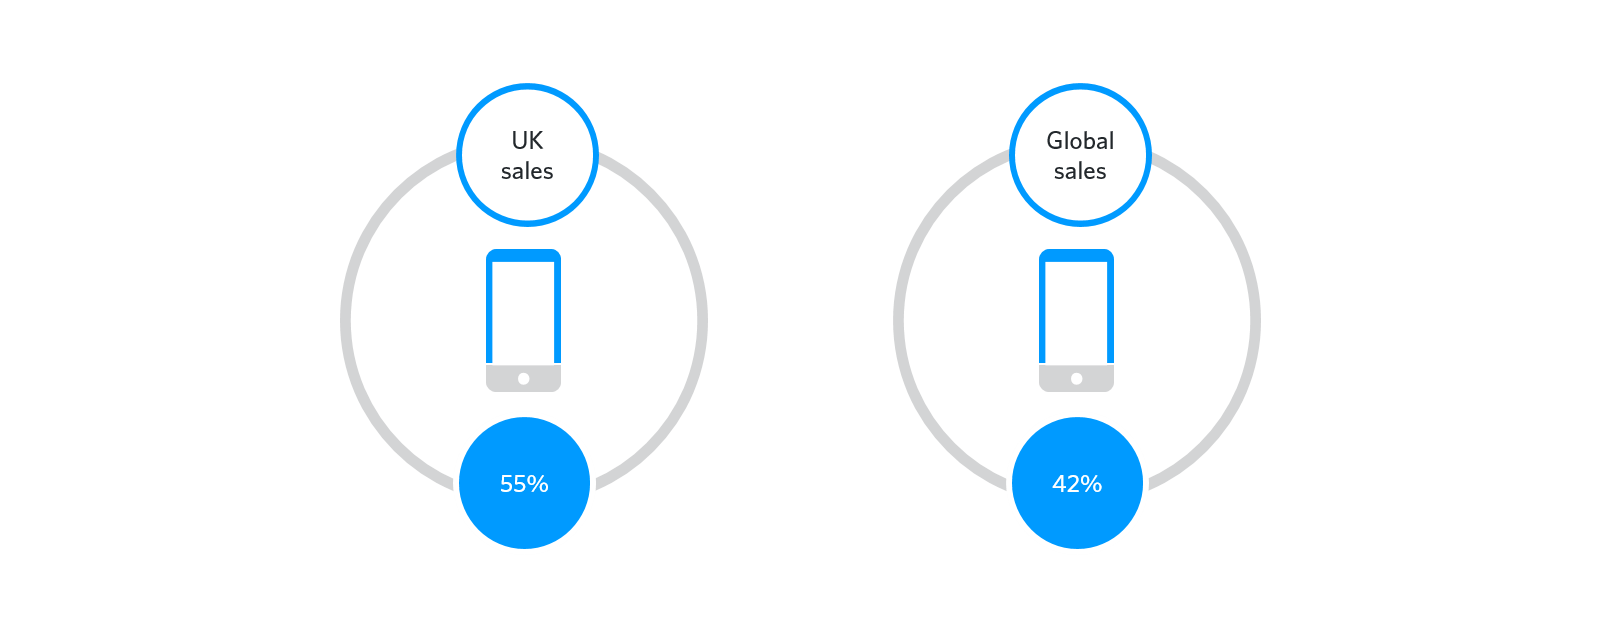 Mobile UK vs. global sales